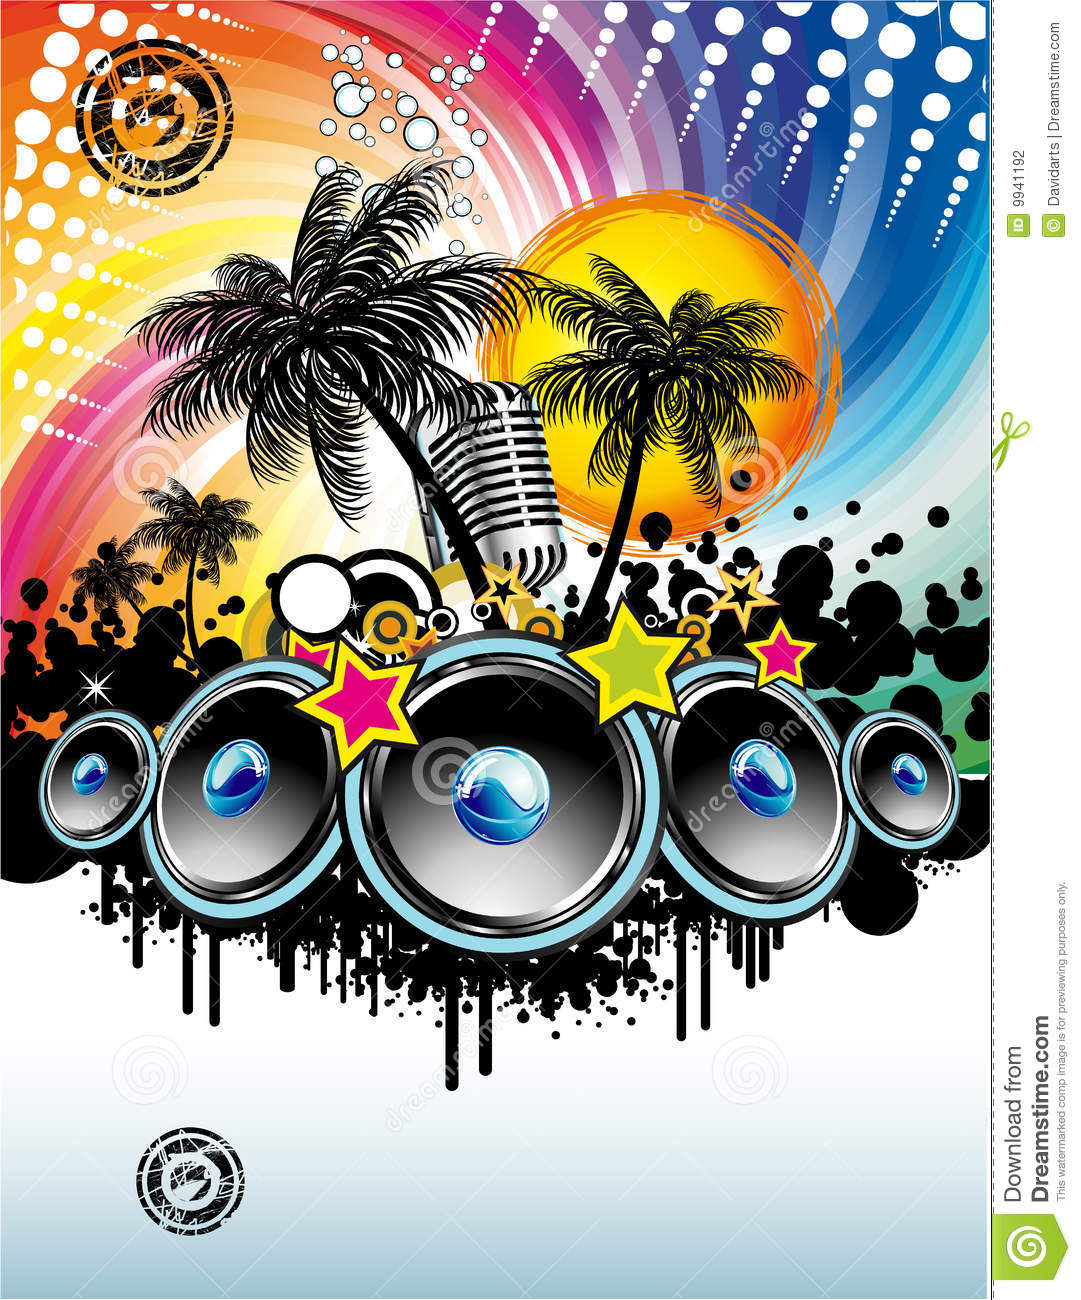 Music Event Discoteque Flyer Photography Image 9941192 – Music Flyer